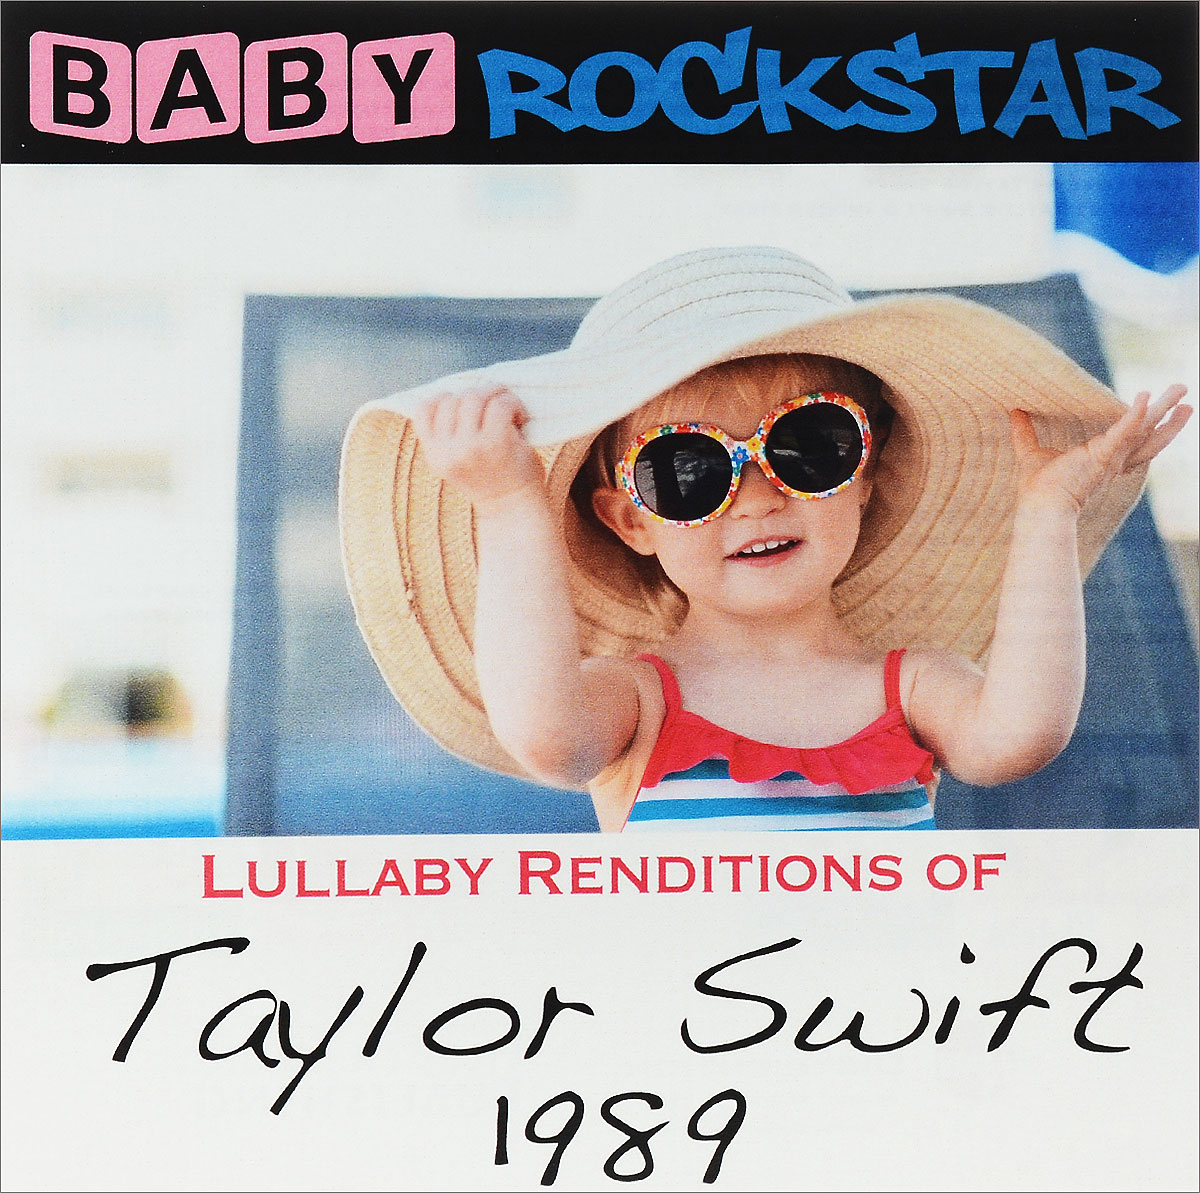 Baby Rockstar Baby Rockstar. Lullaby Renditions Of Taylor Swift - 1989 цена и фото